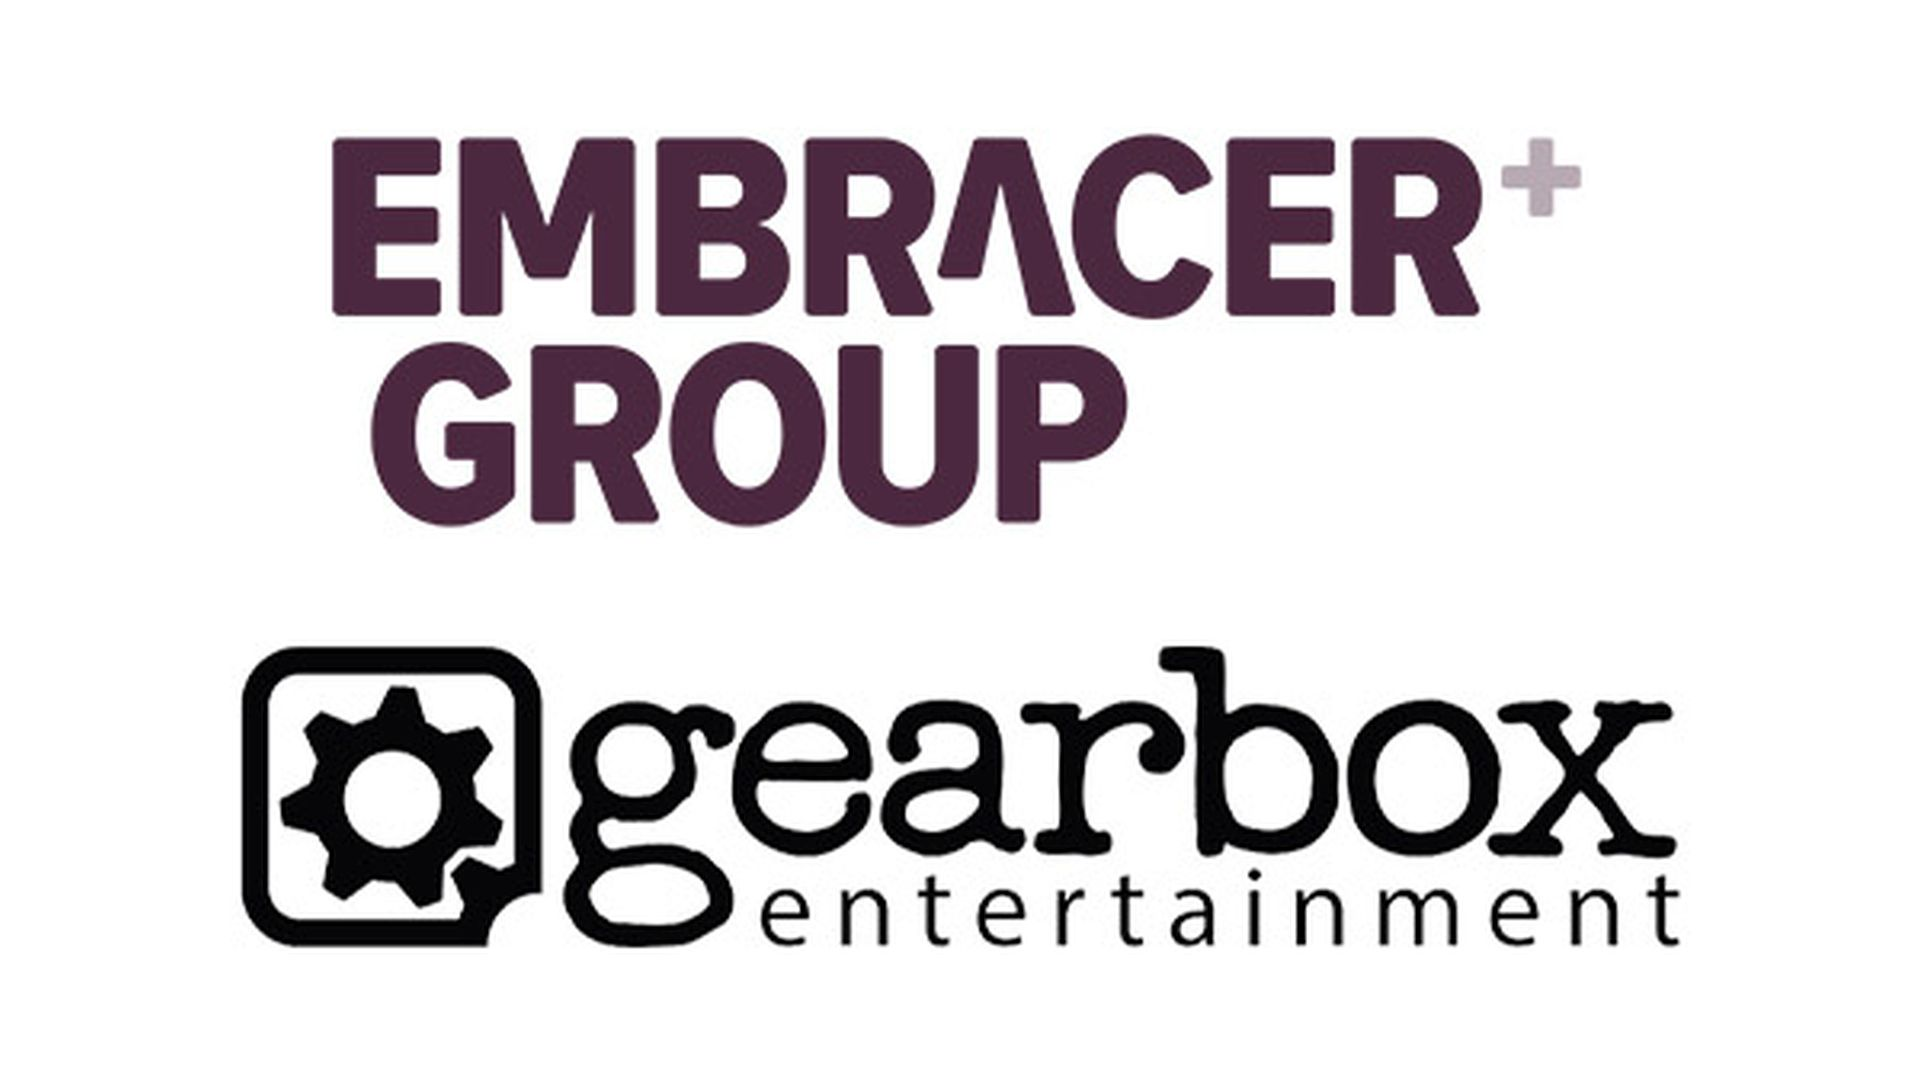 Gearbox - Embracer Group